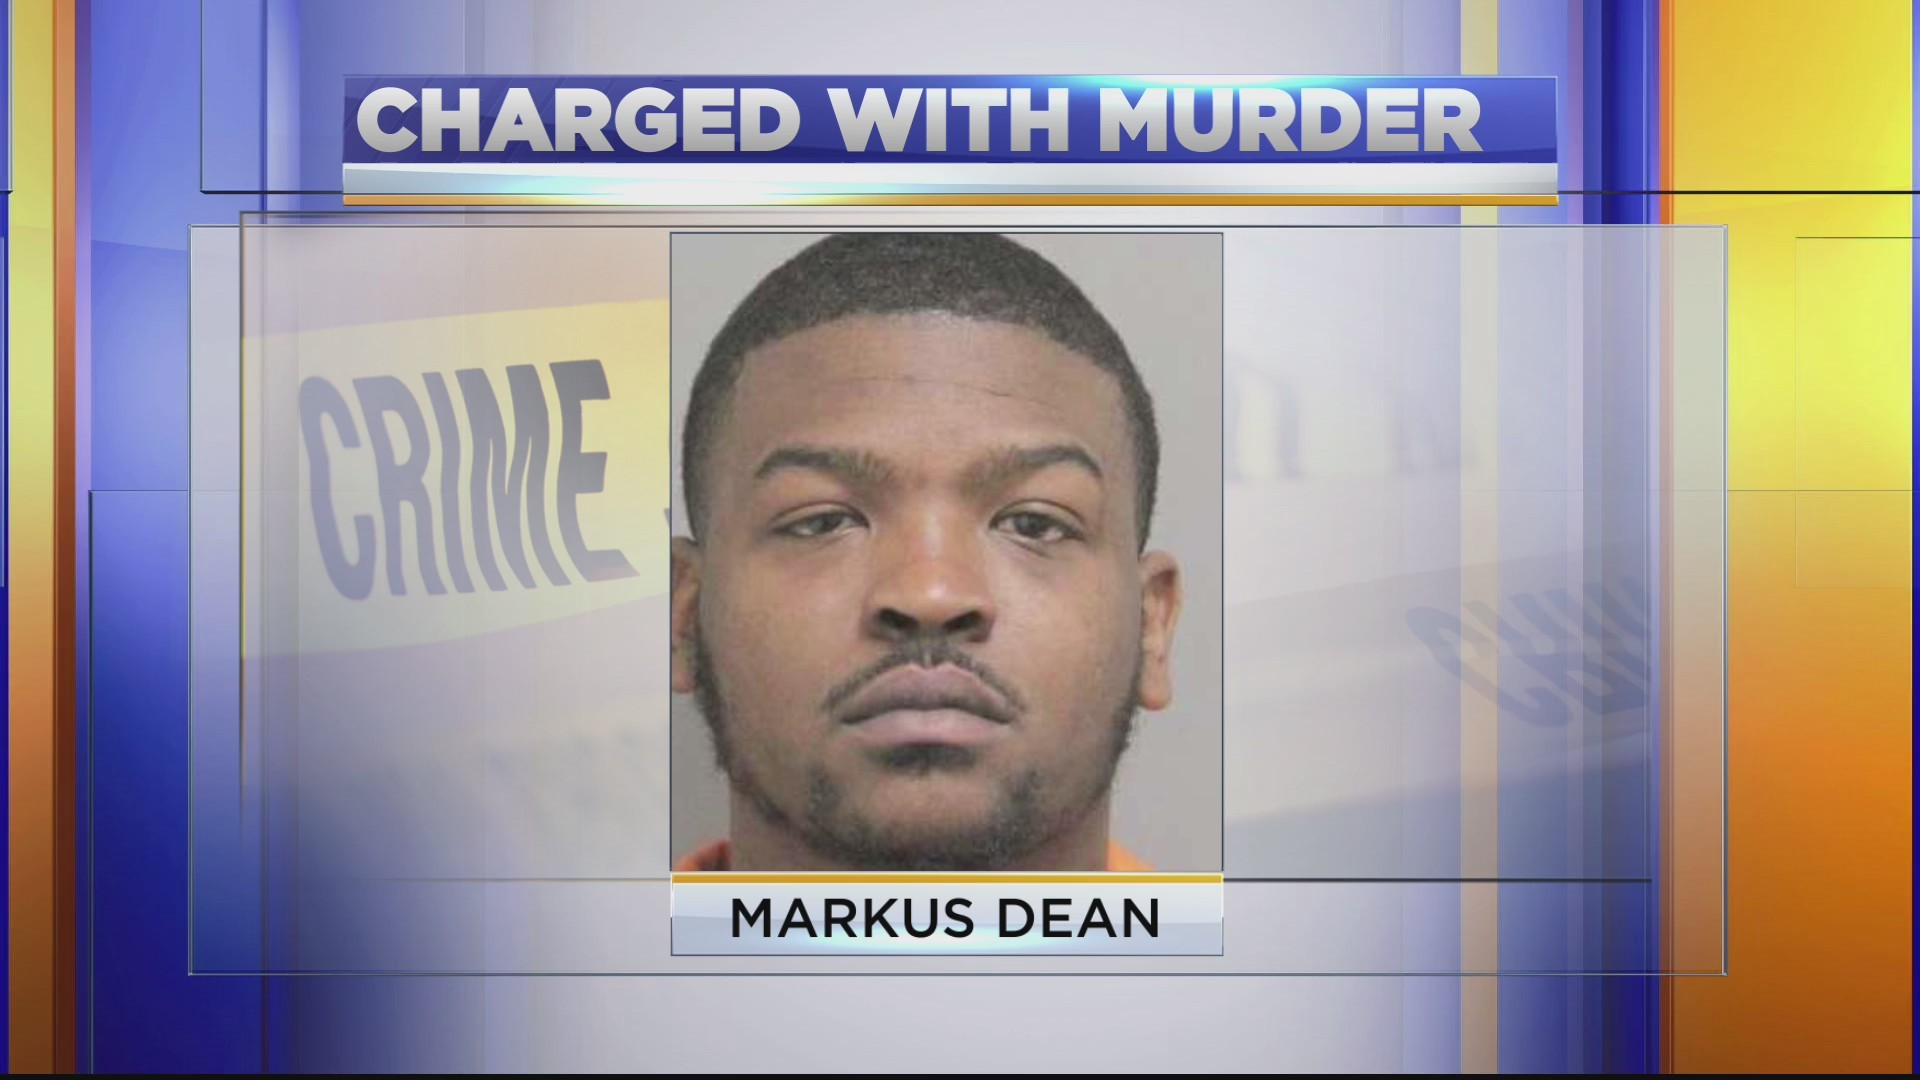 Markus_Dean_charged_with_murder_of_Woodb_0_20190510213609